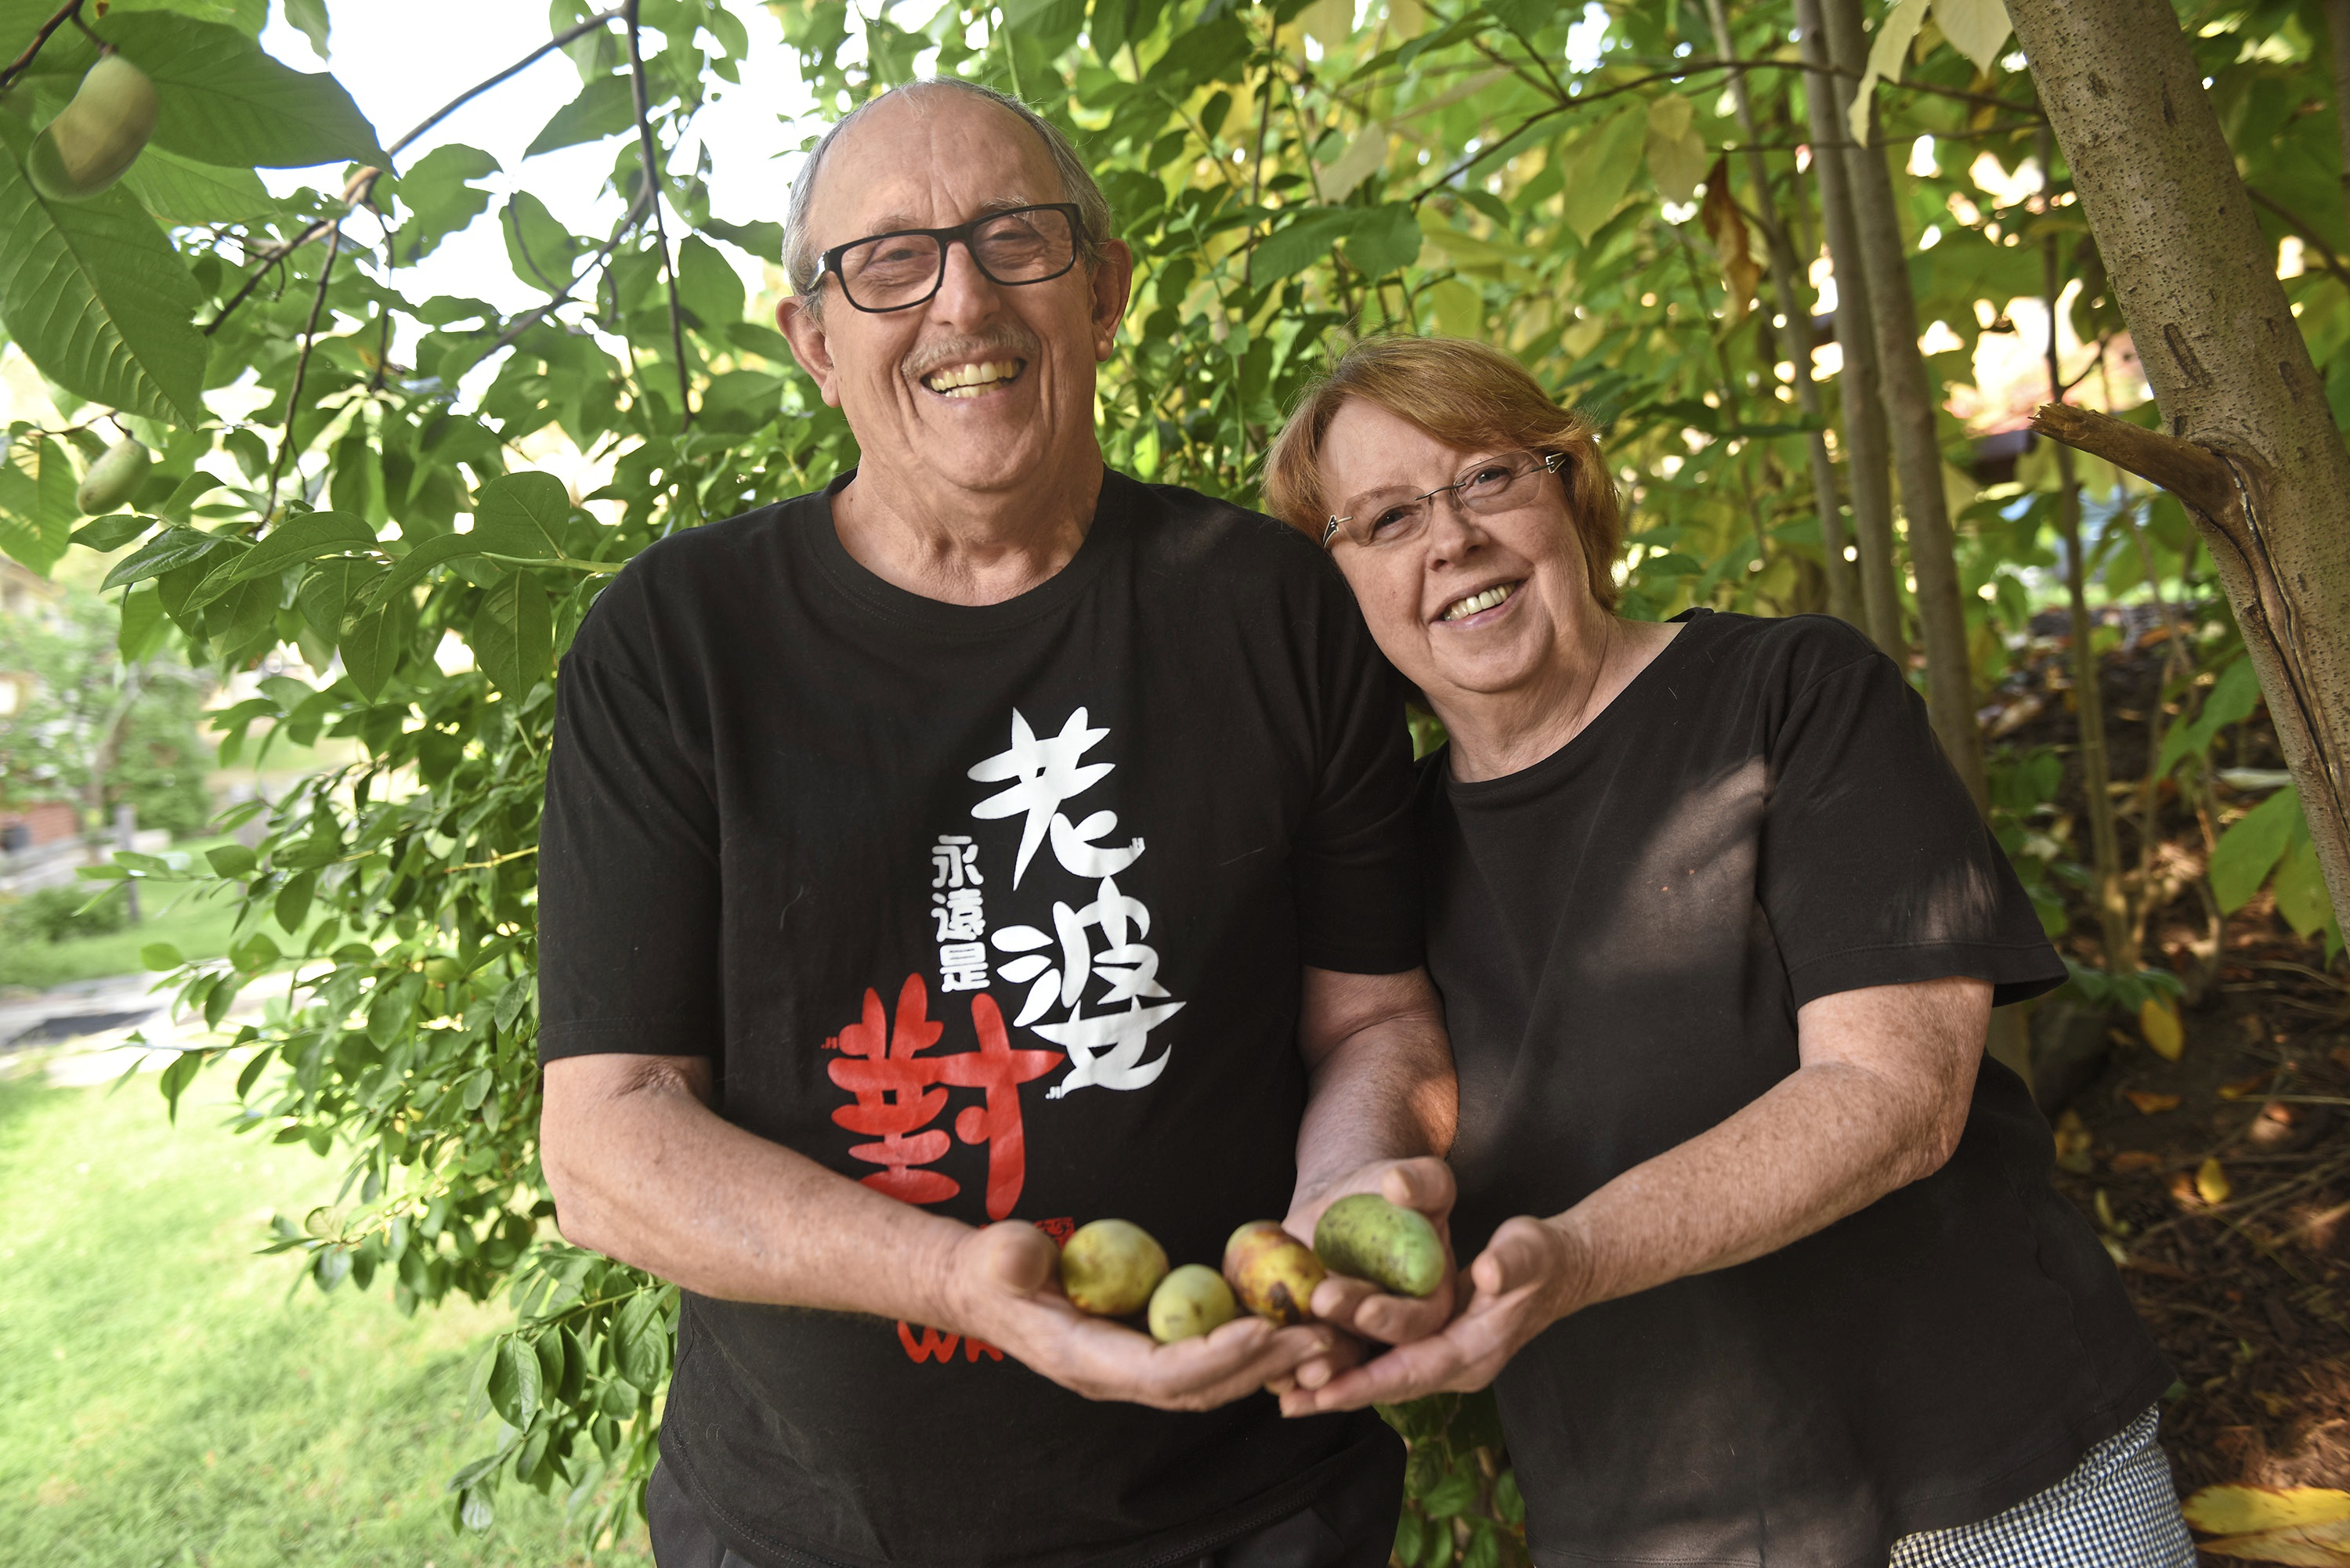 20170920smPawpaw003-2 Edward and Alma Fincke hold pawpaws from trees by their Emsworth home. The couple planted pawpaw trees in 1988.